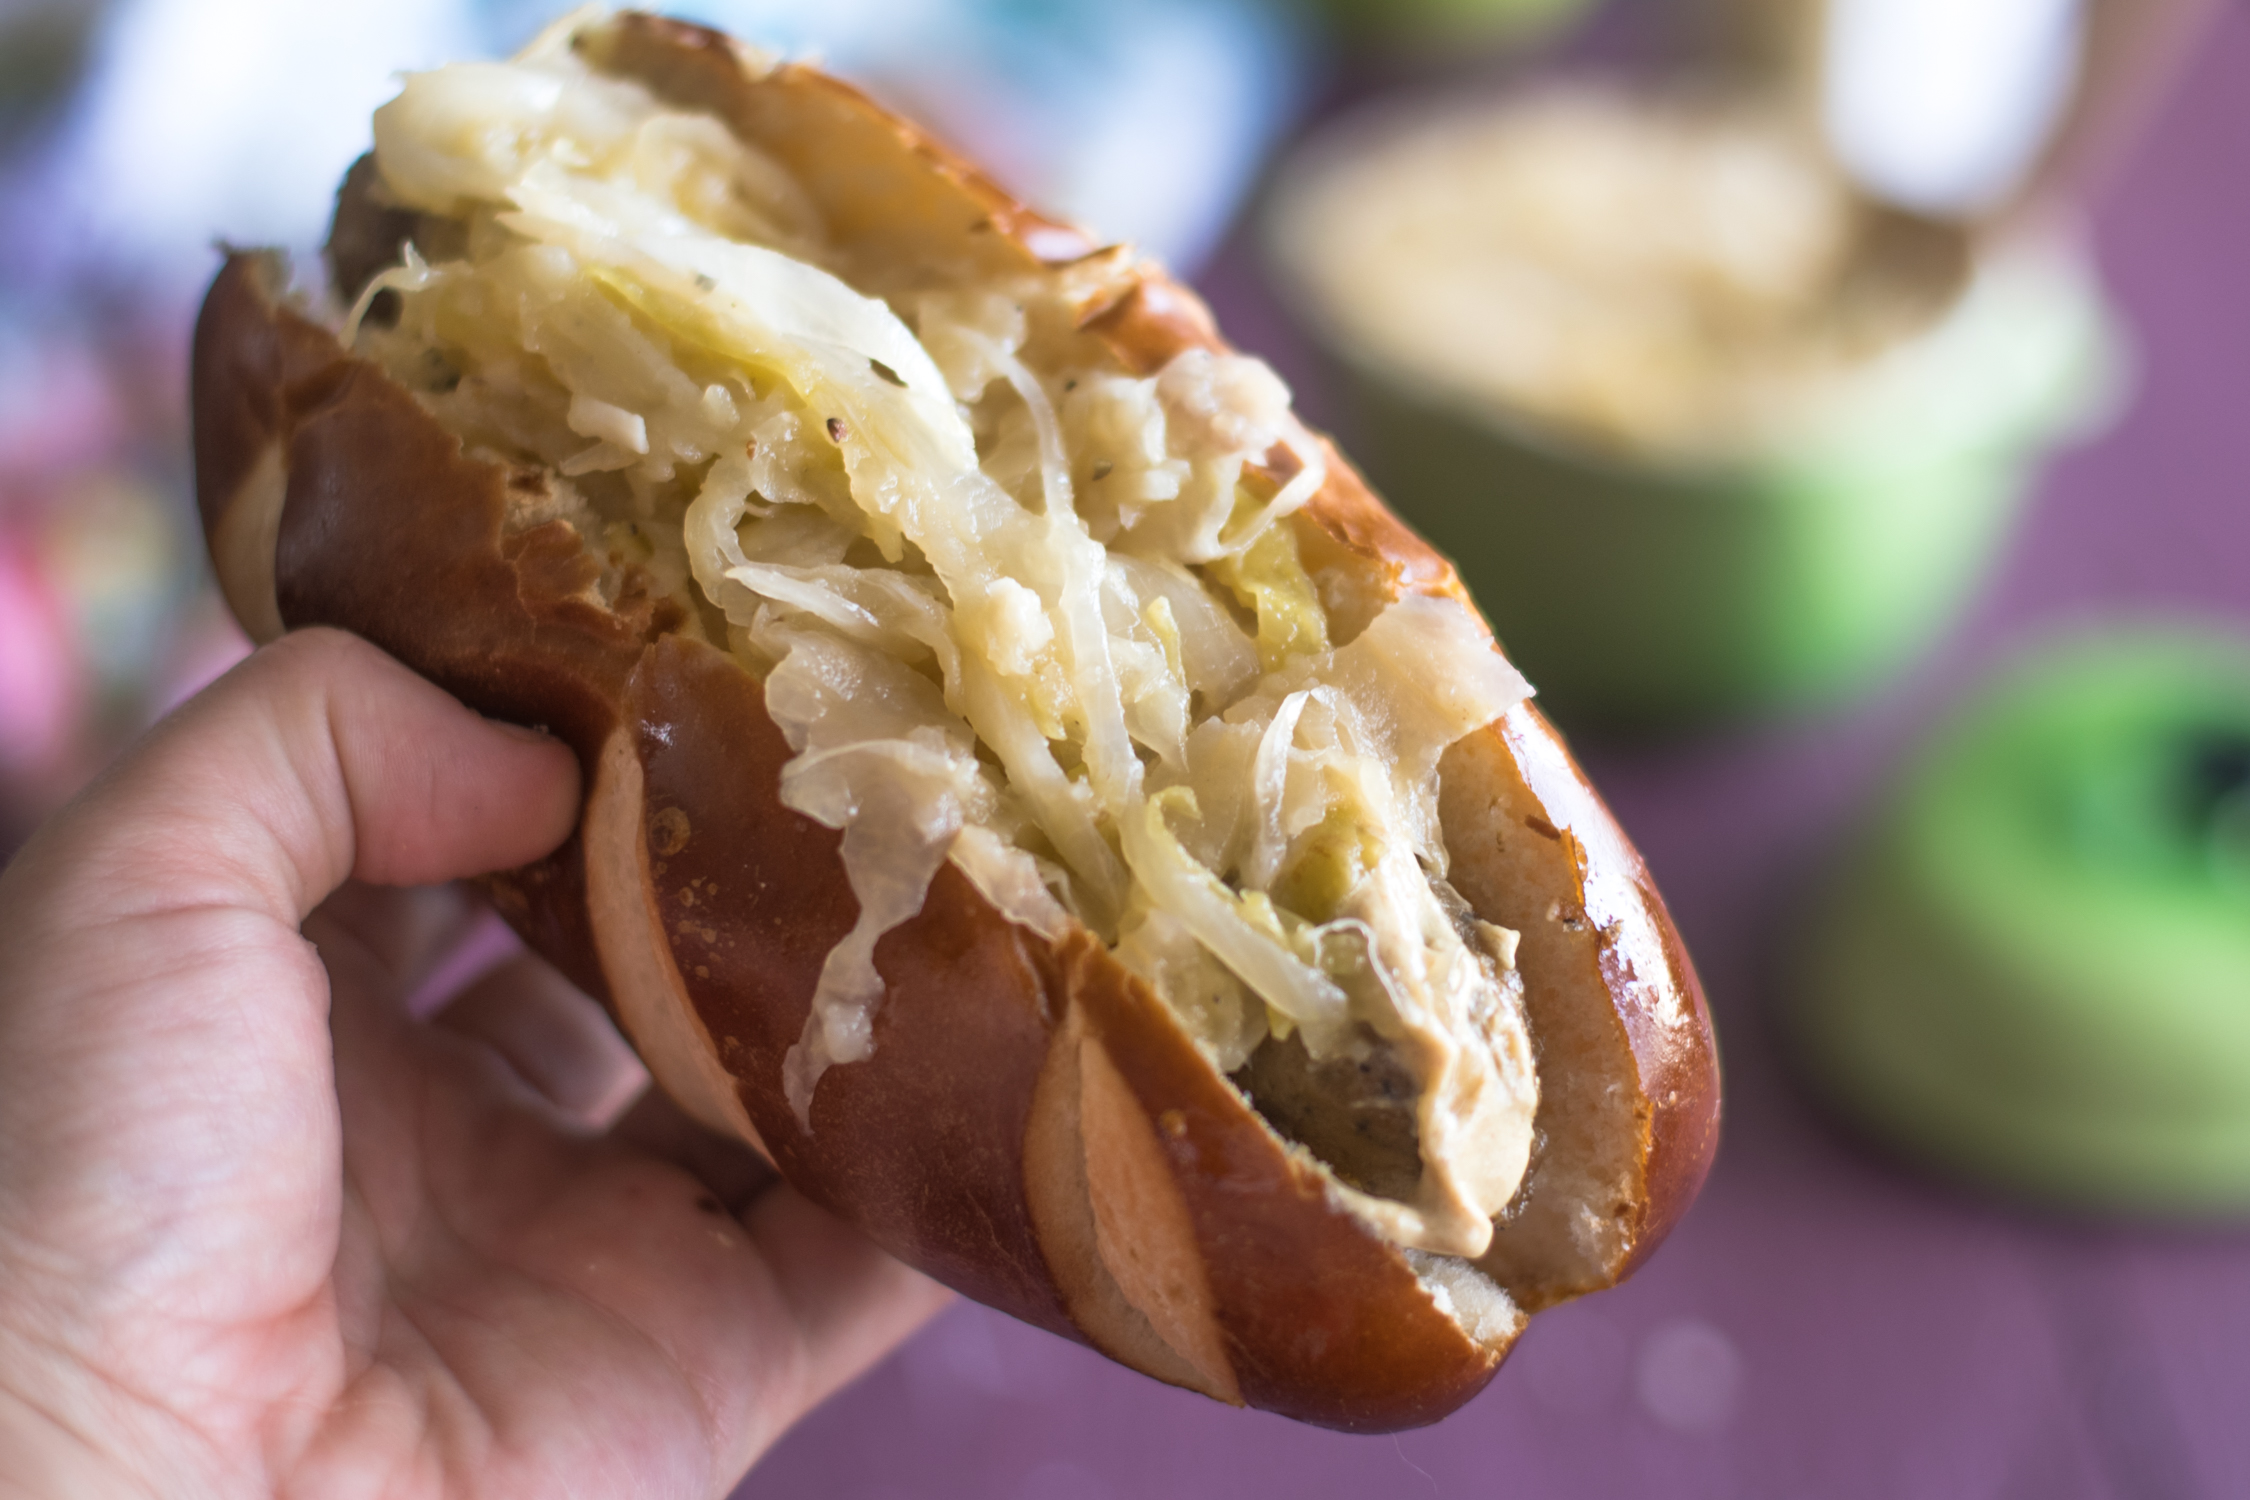 These Vegan dogs feature Field Roast's Smoked Apple and Sage Sausages are topped with an apple and sauerkraut topping!